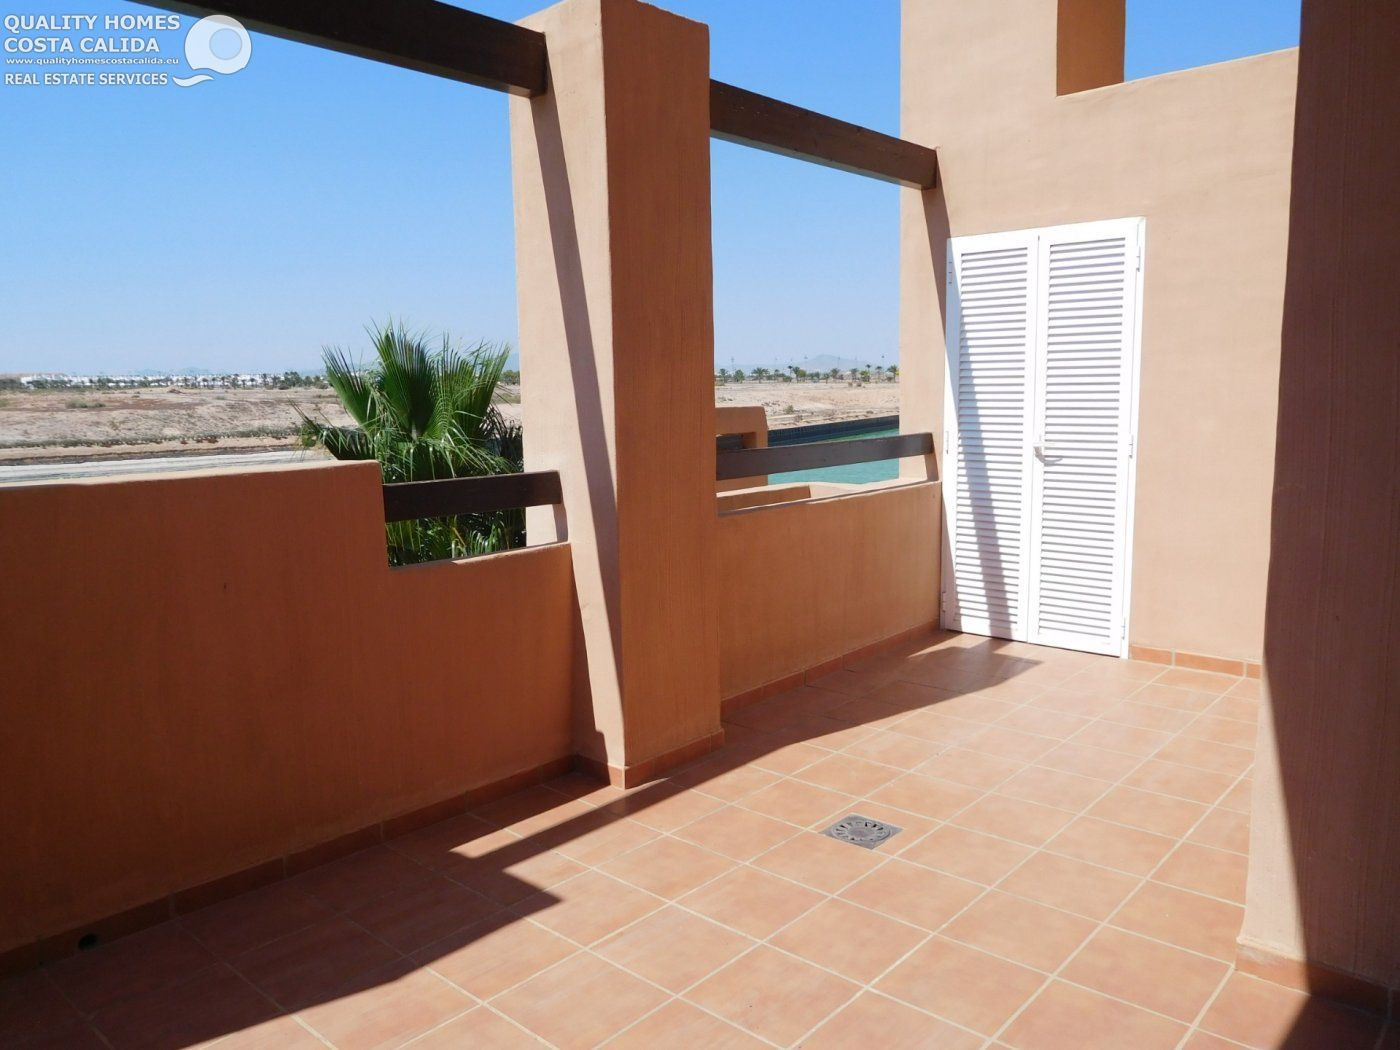 Image 2 Apartment ref 3265-1840 for sale in Condado De Alhama Spain - Quality Homes Costa Cálida